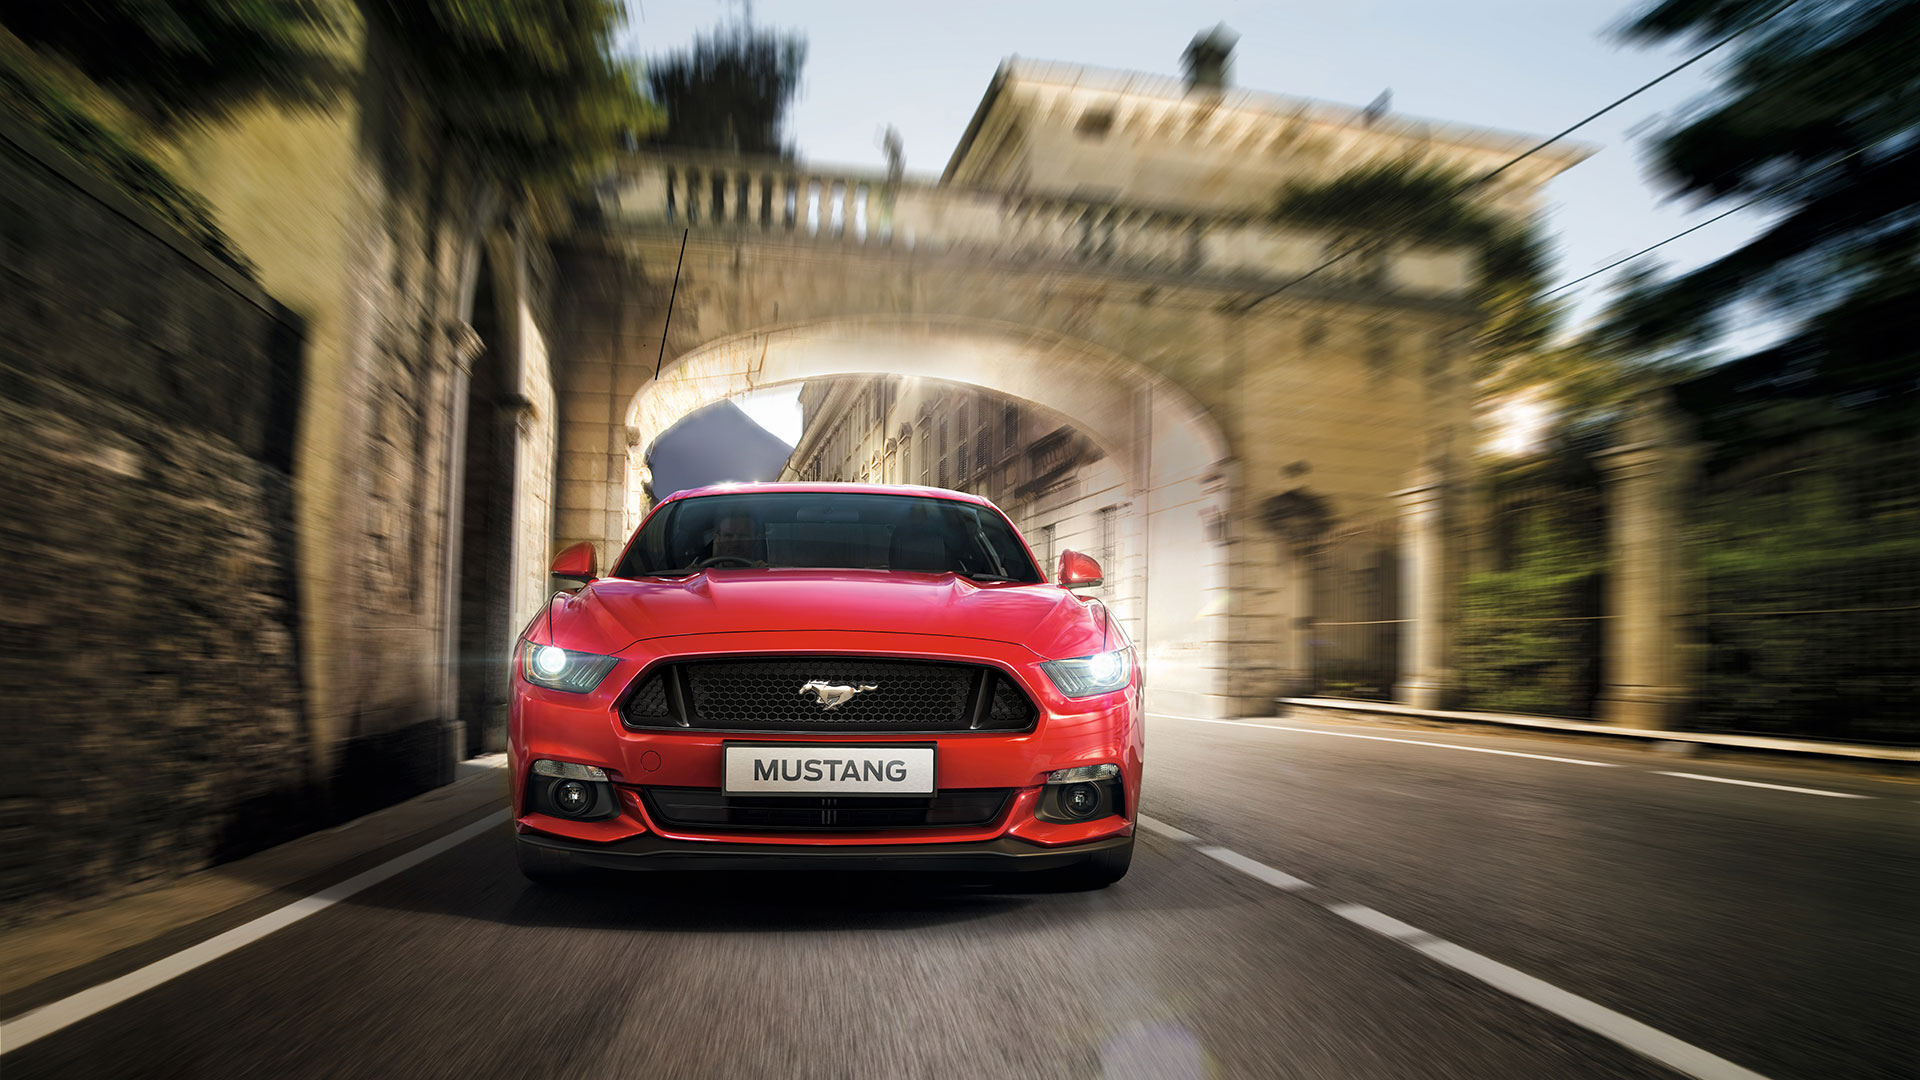 Ford Mustang New Ford Mustang Hd 285177 Hd Wallpaper